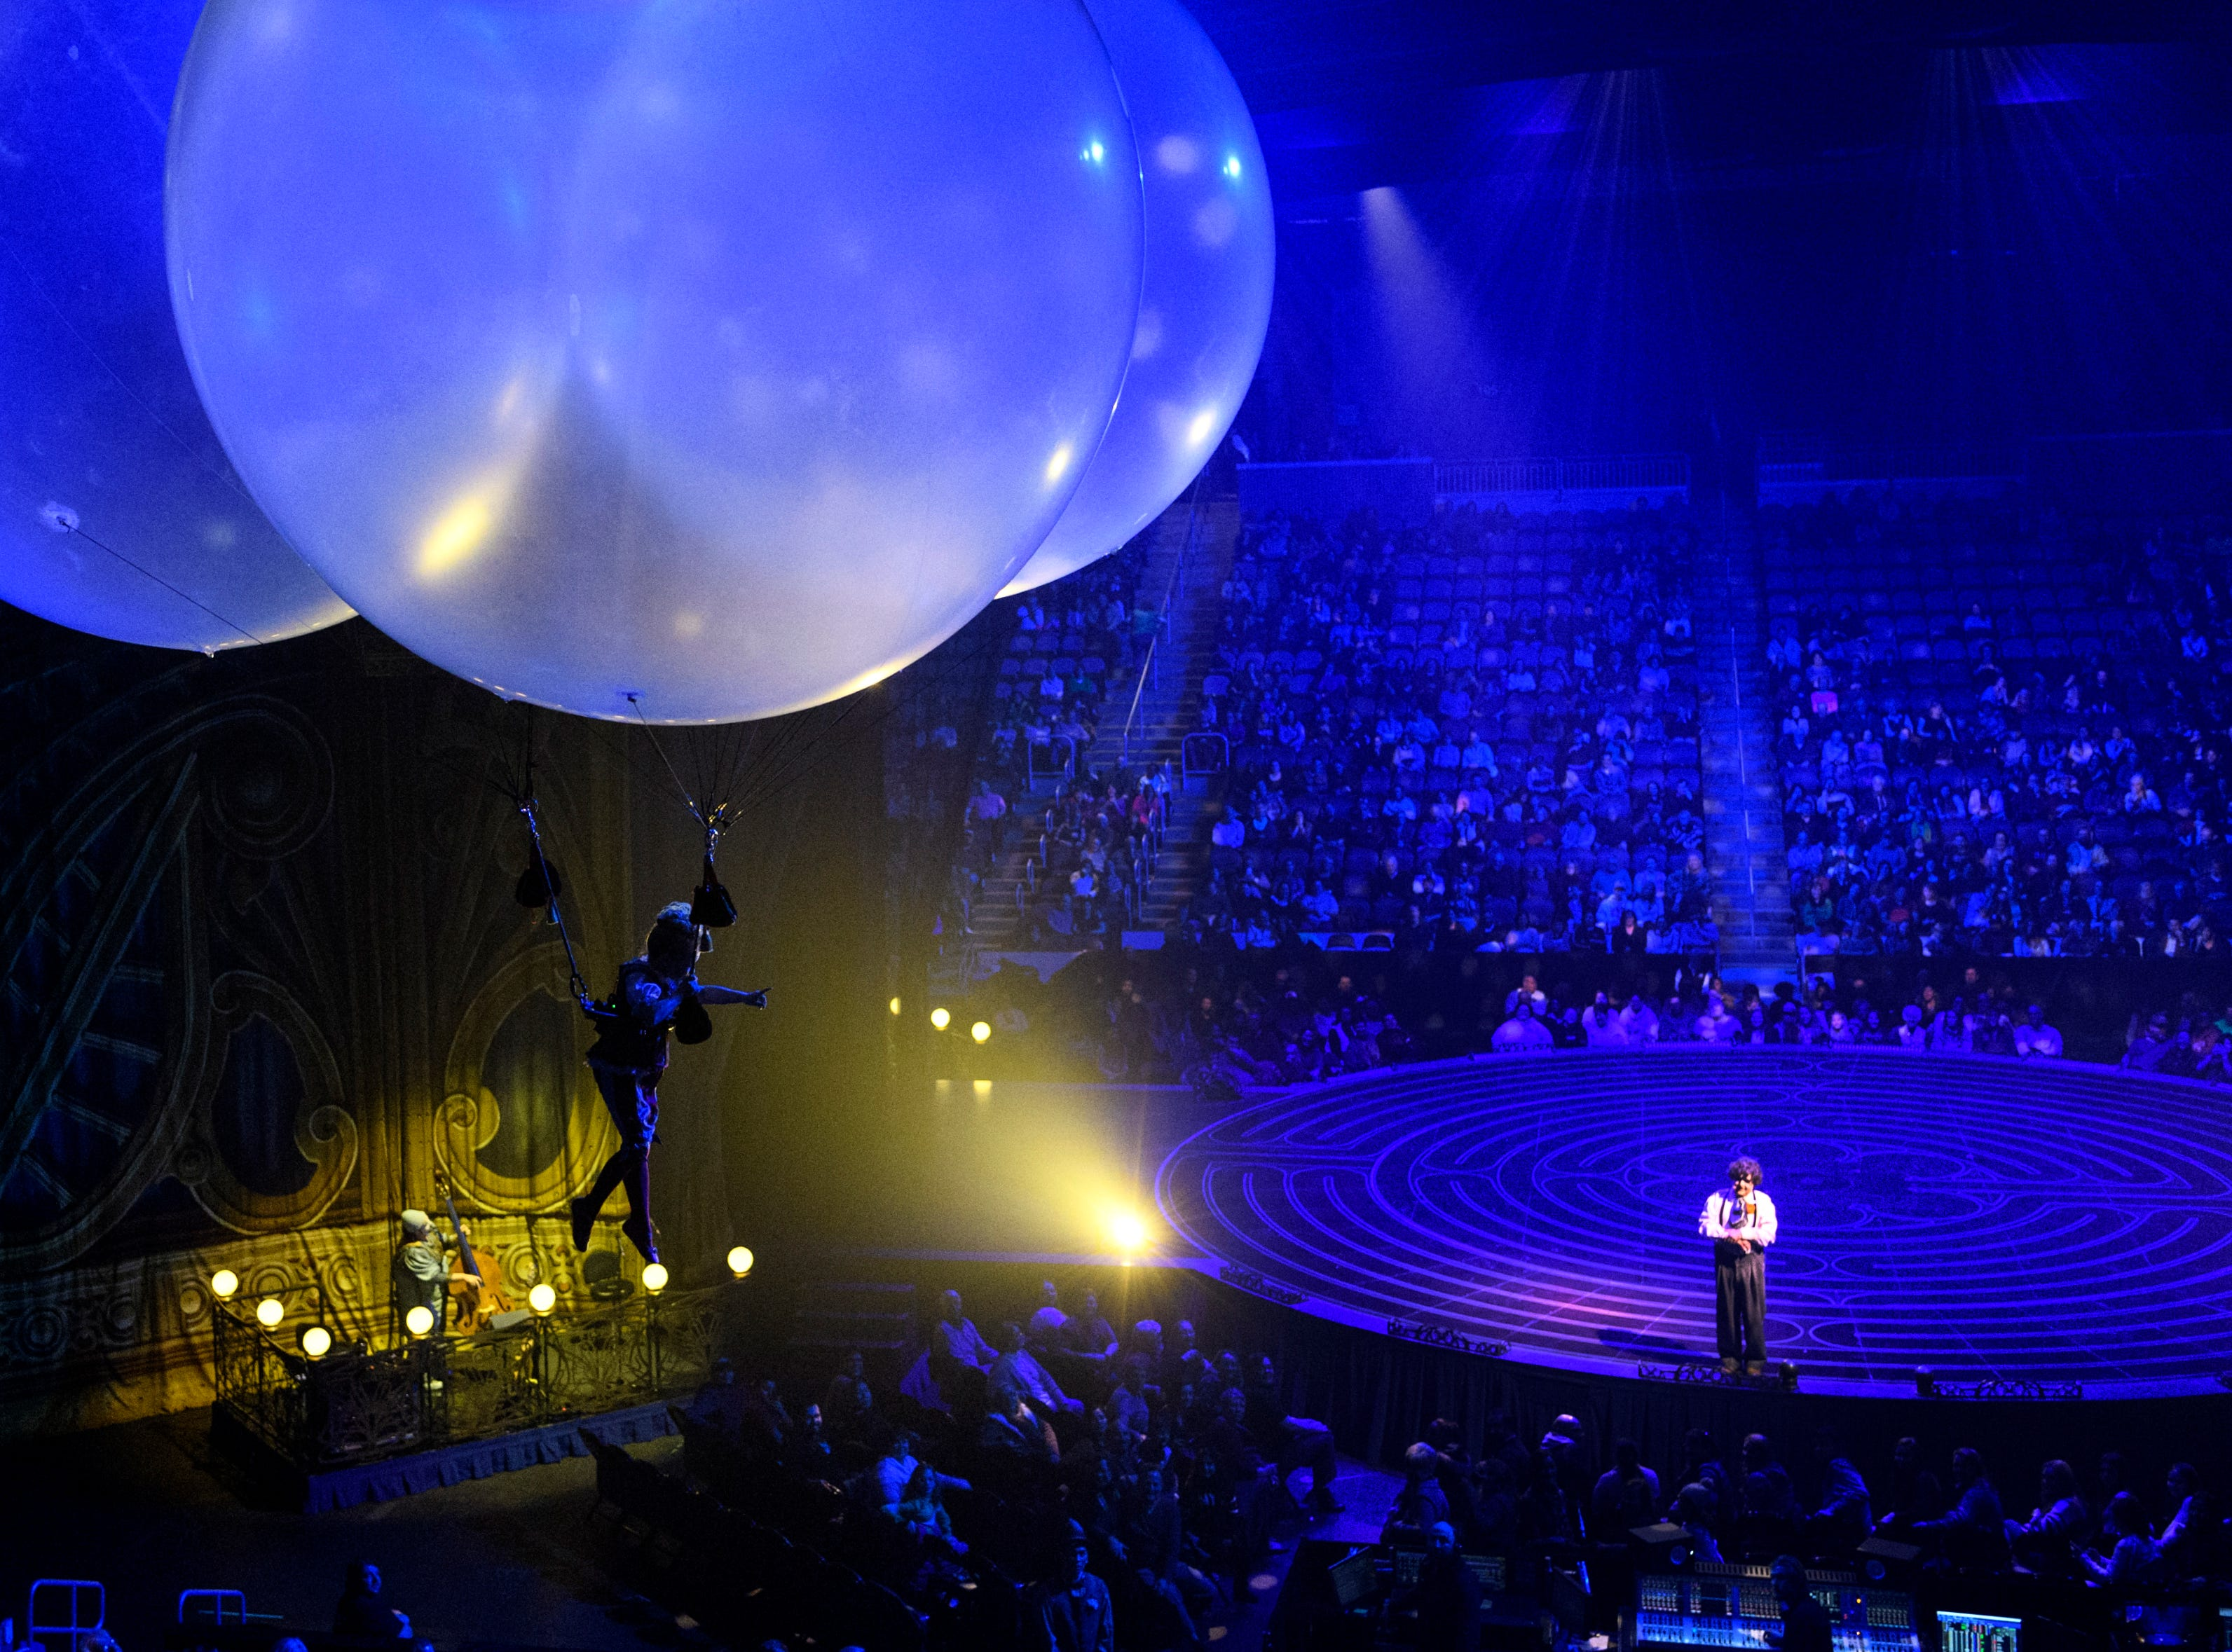 Valentyna Pahlevanyan, left, leaves Mauro the Dreamer Clown, played by Lolo Fernández, on stage to float around the crowd from three large balloons during Cirque du Soleil's Corteo show at Ford Center in Evansville, Ind., Wednesday night, Jan. 23, 2019.